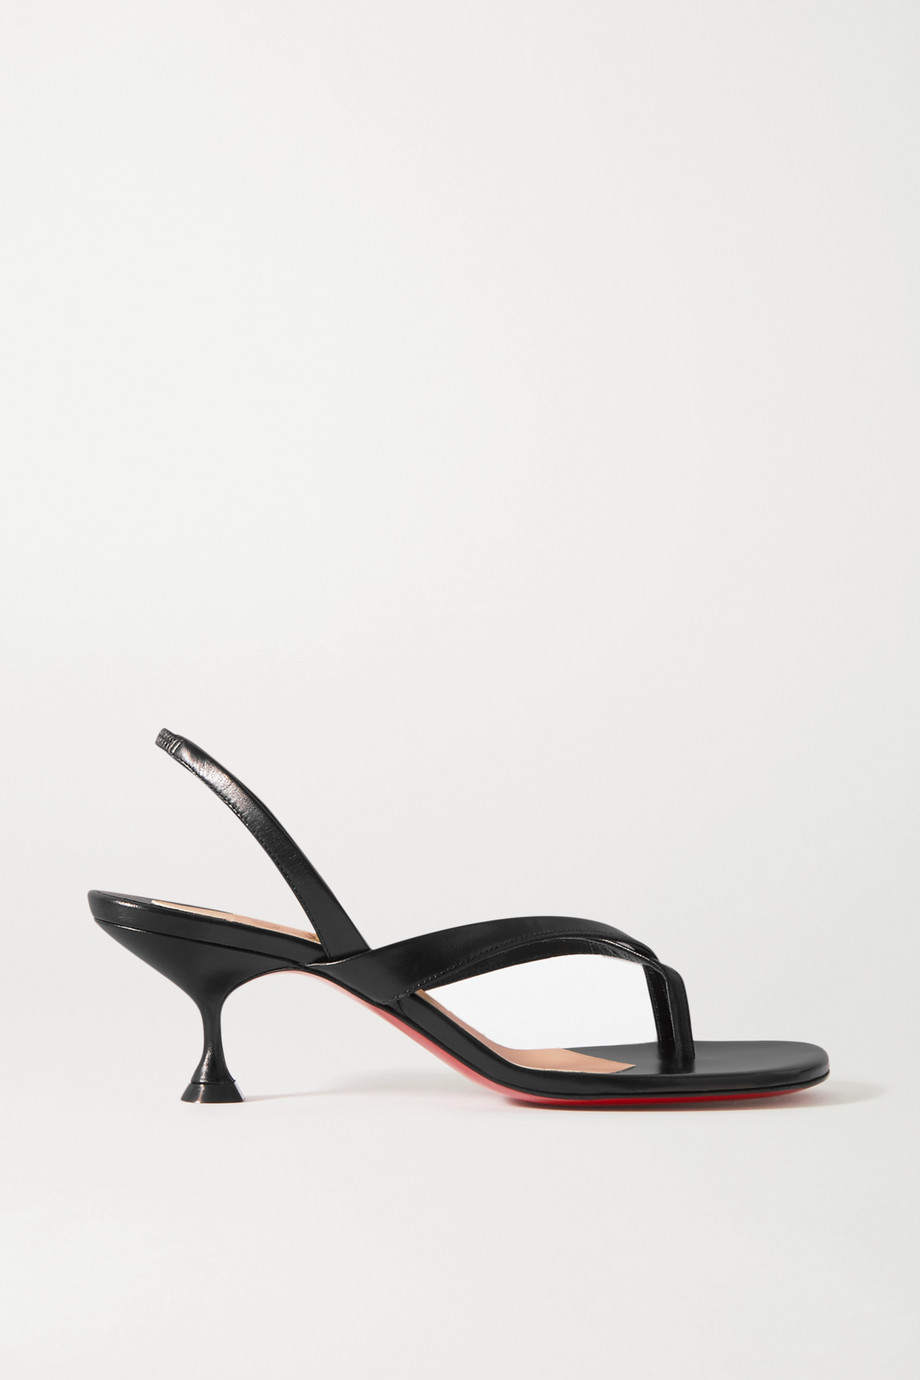 Christian Louboutin Taralita 55 leather slingback sandals